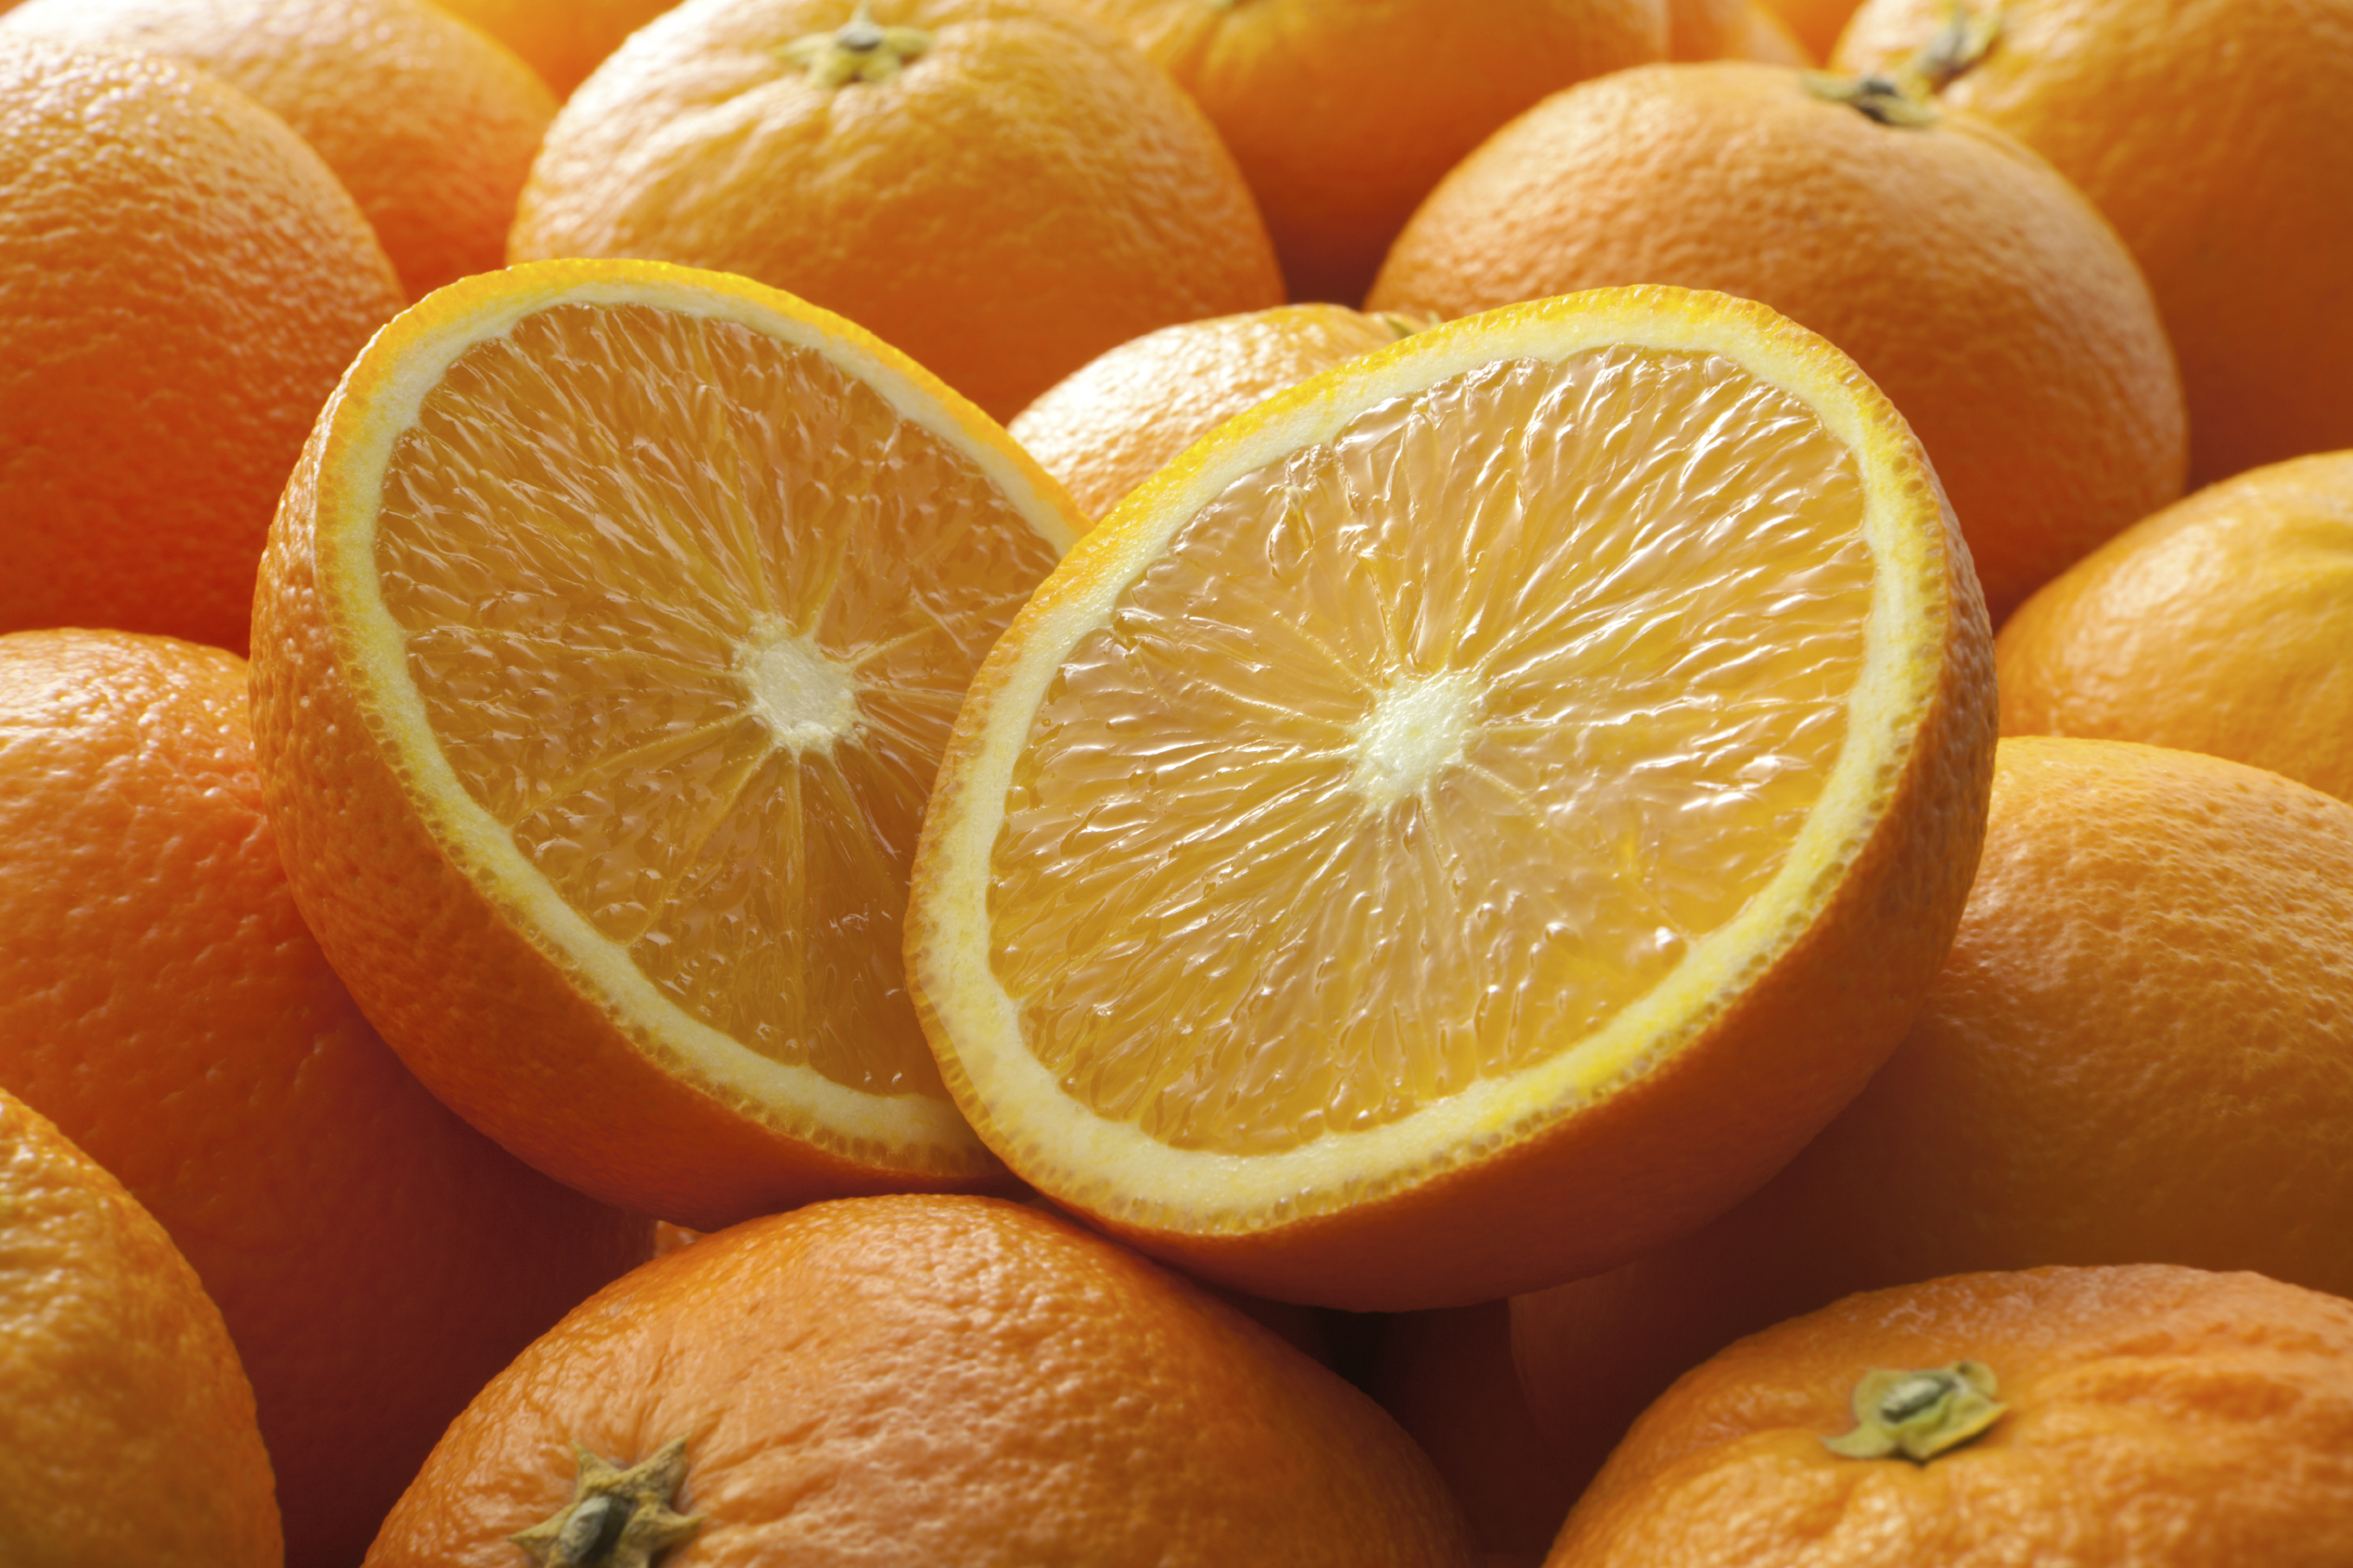 Keep muscle cramps at bay by consuming plenty of Oranges!